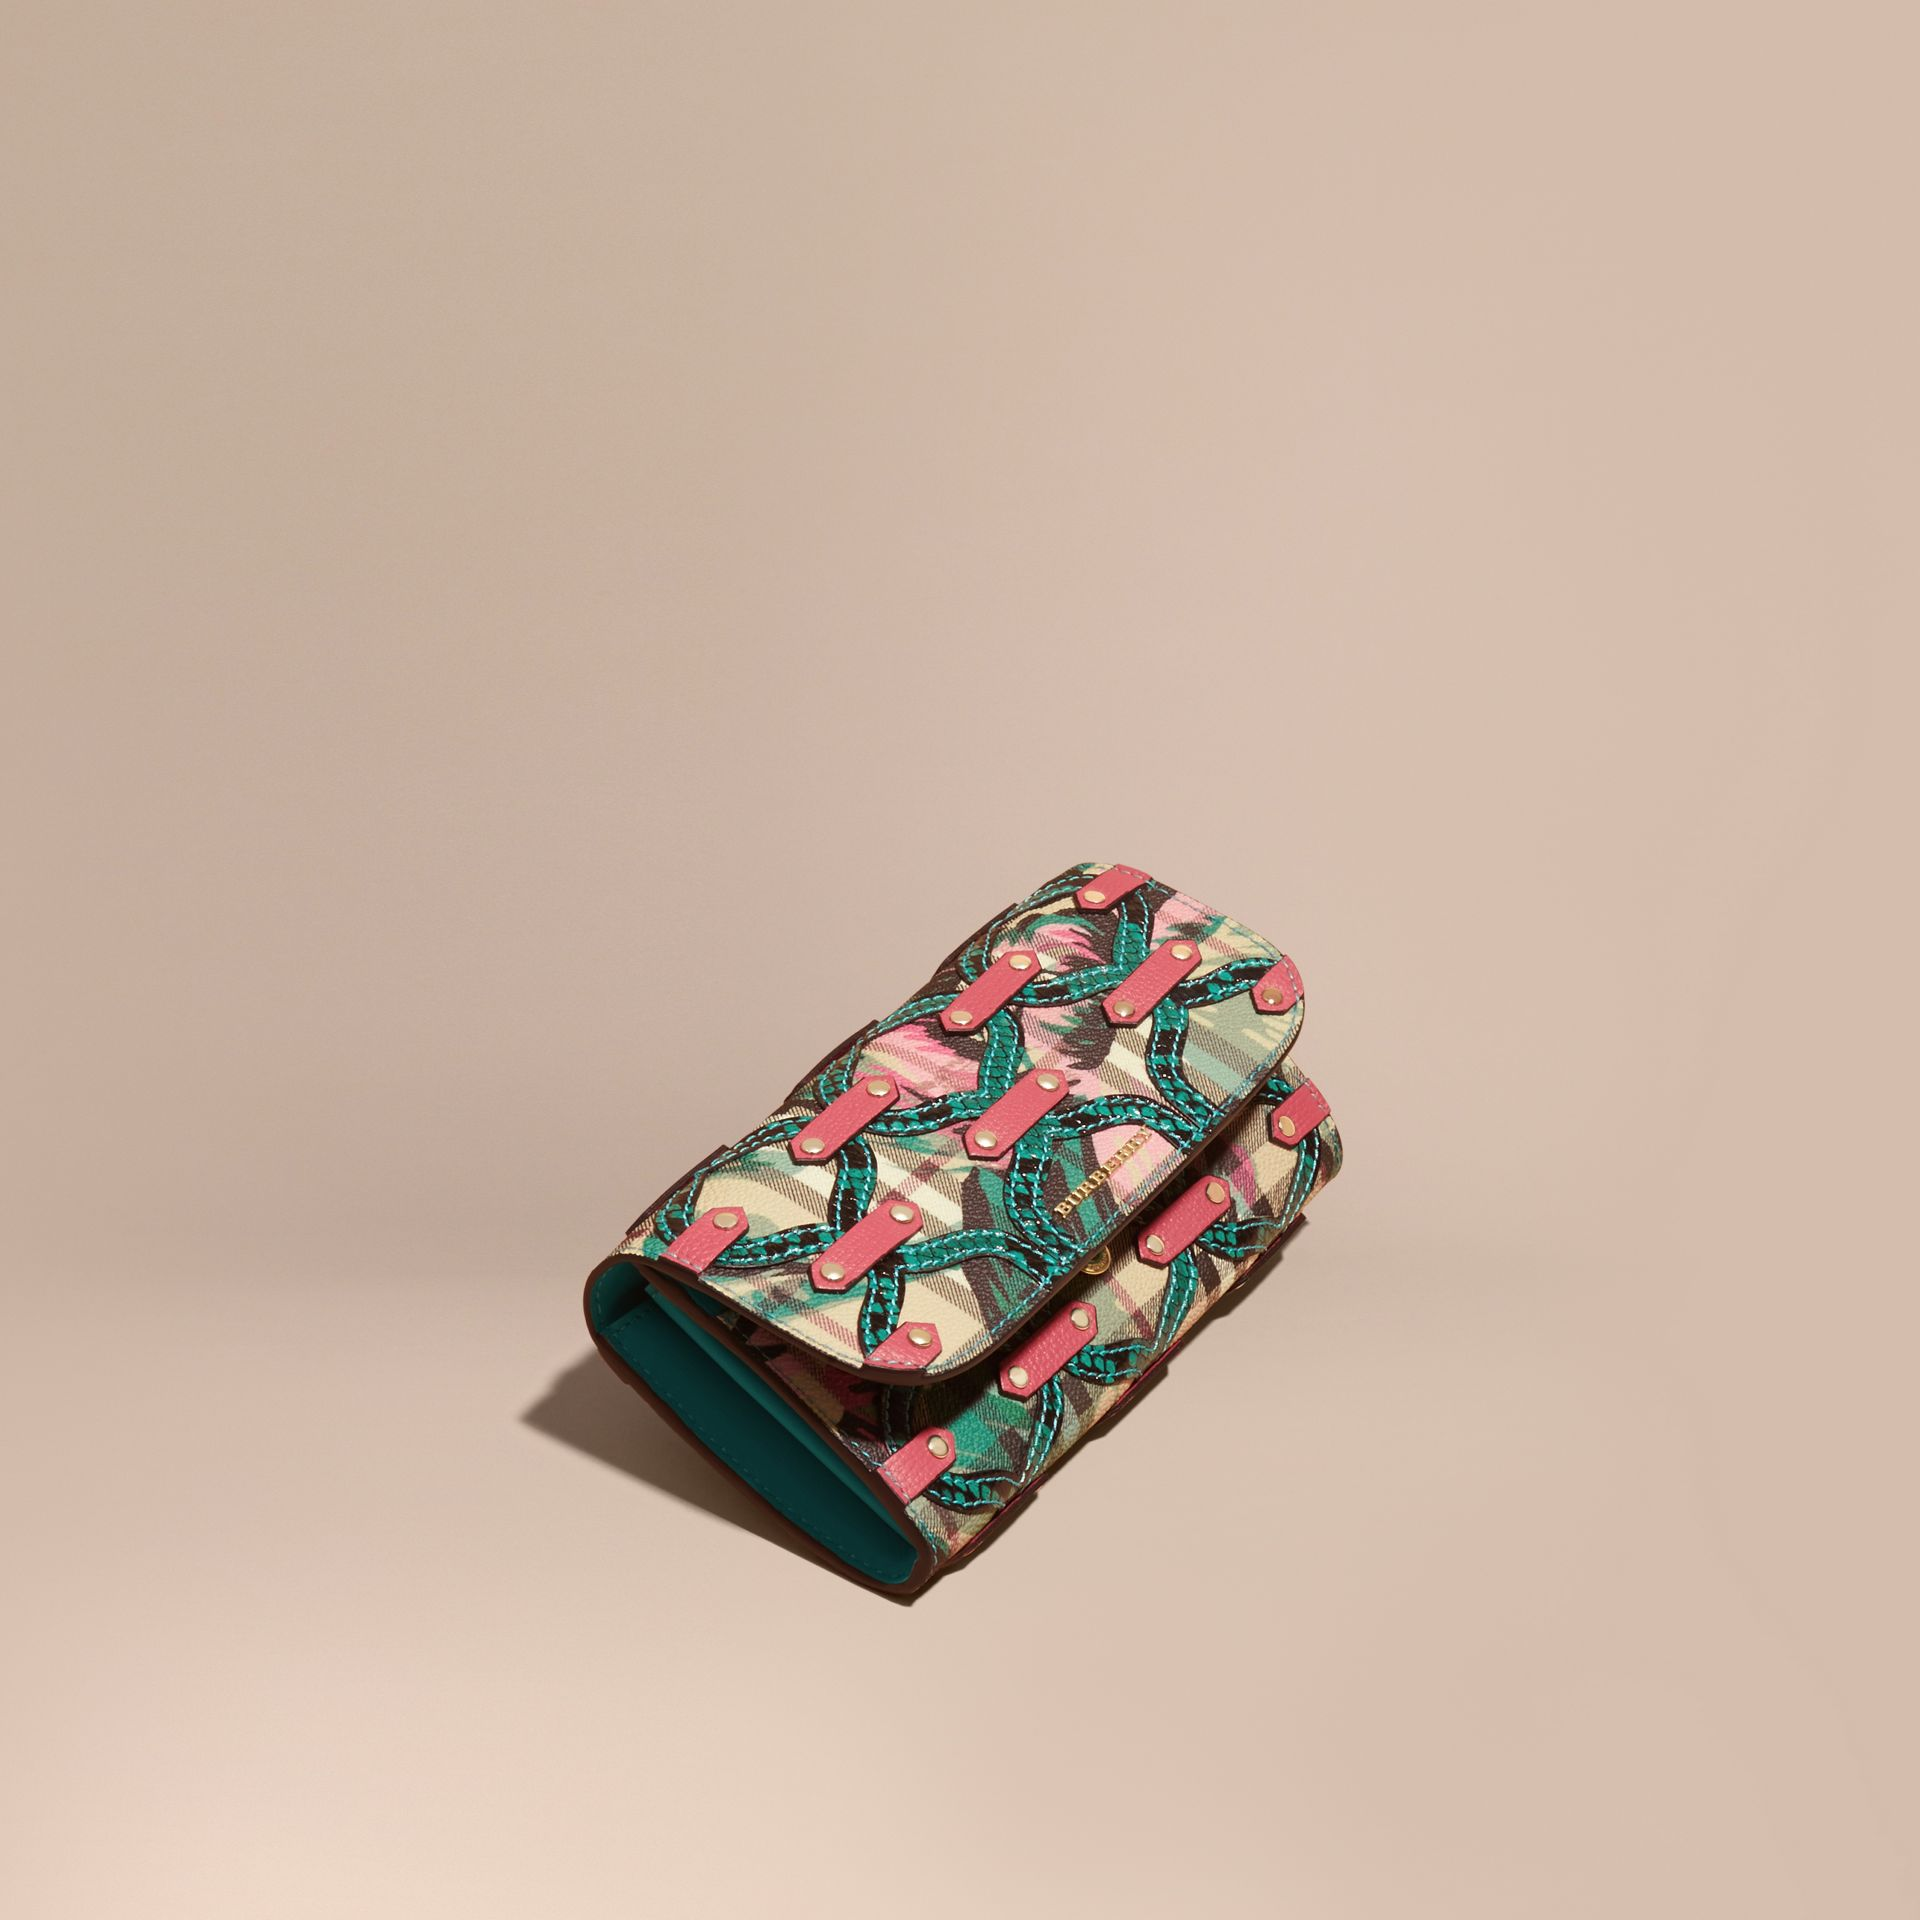 Mineral blue Snakeskin Appliqué Peony Rose Print Haymarket Check Continental Wallet Mineral Blue - gallery image 1